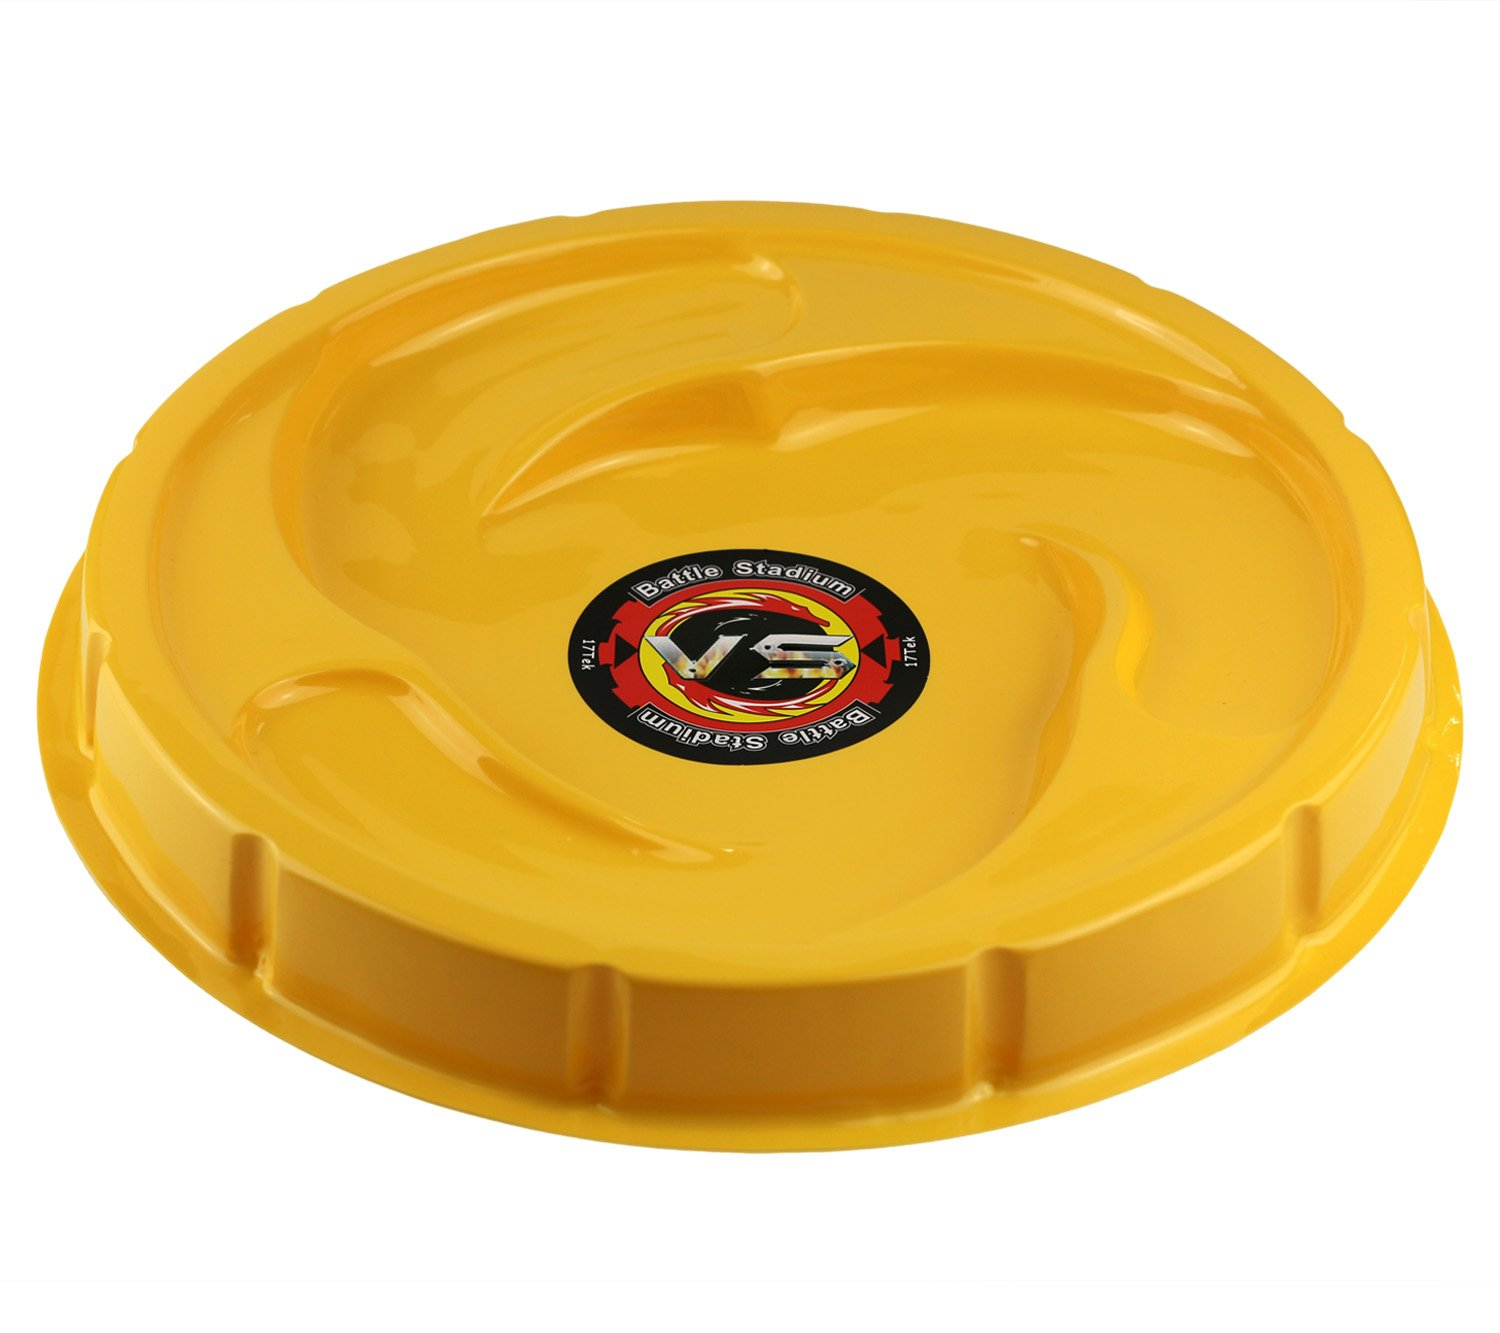 Beyblade Battle Burst Stadium Arena Battling Attack Type Beystadium for Battling Tops Game ( Yellow )